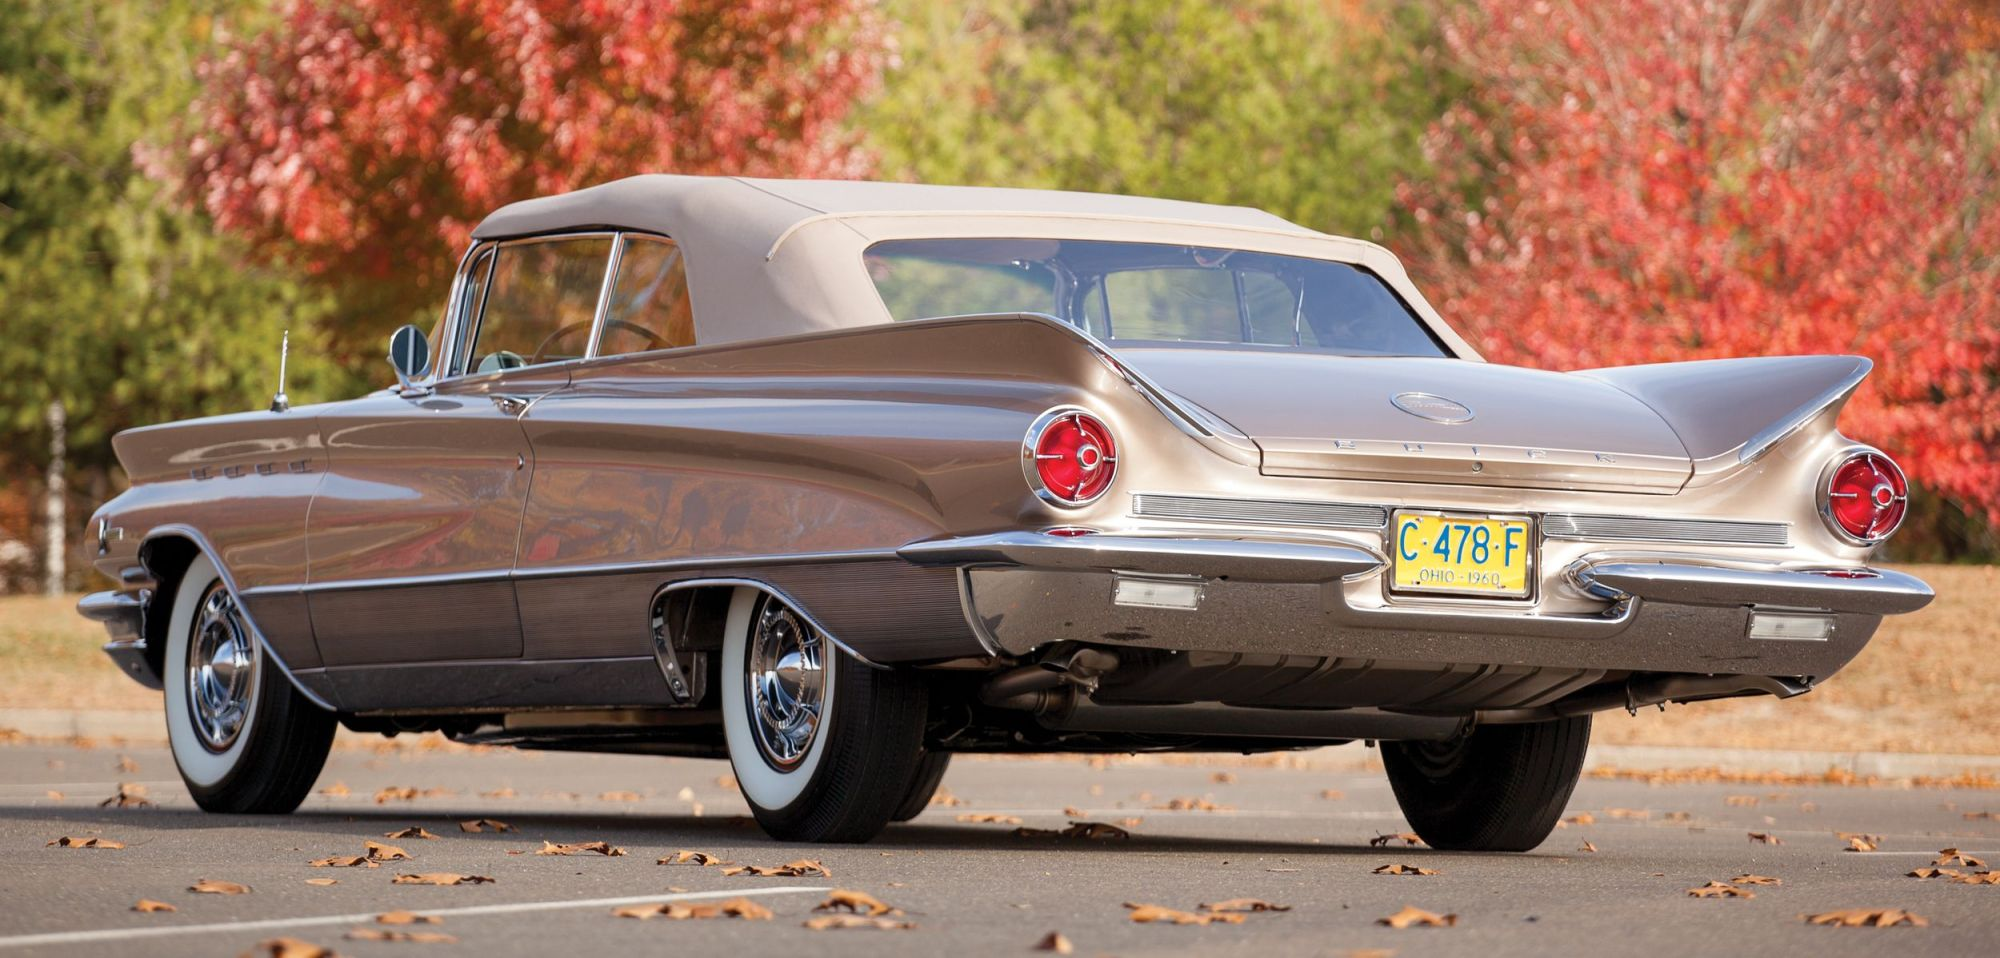 hight resolution of making the case for the 1960 buick michigan automotive inspectionmichigan automotive inspection services